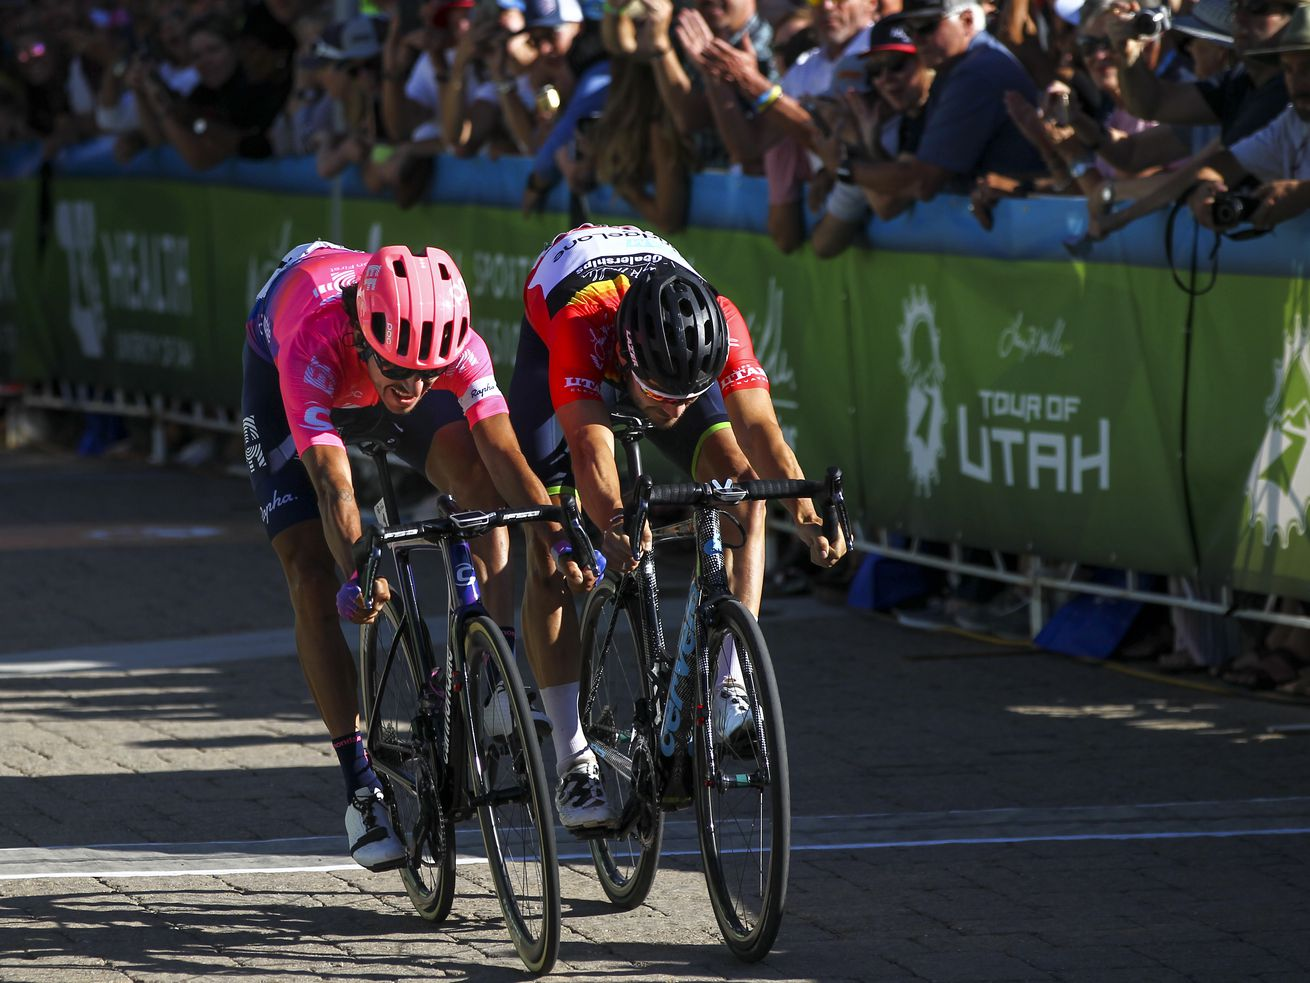 Tour of Utah: Lachlan Morton conquers Canyons Village at Park City Mountain stage